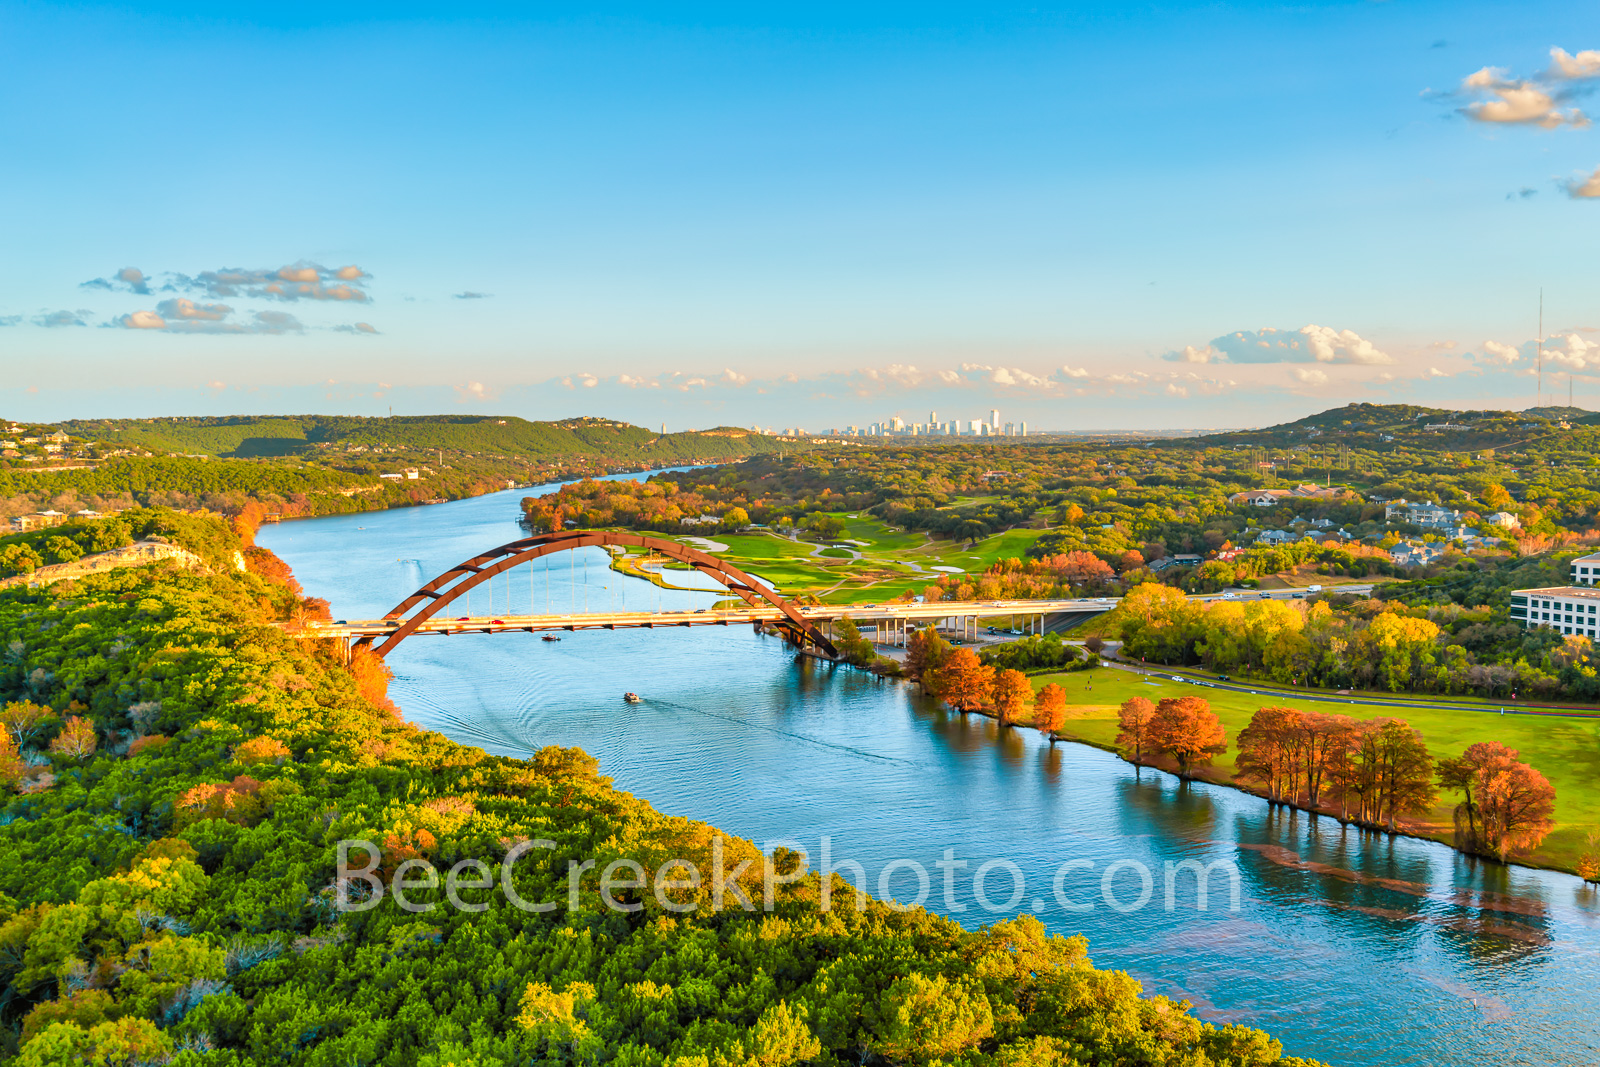 texas, austin texas, austin pennybacker bridge, austin 360 bridge, austin tx, city of austin, lake austin, 360 bridge, bald cypress, fall, autumn, reflections, austin skyline, downtown austin, fall co